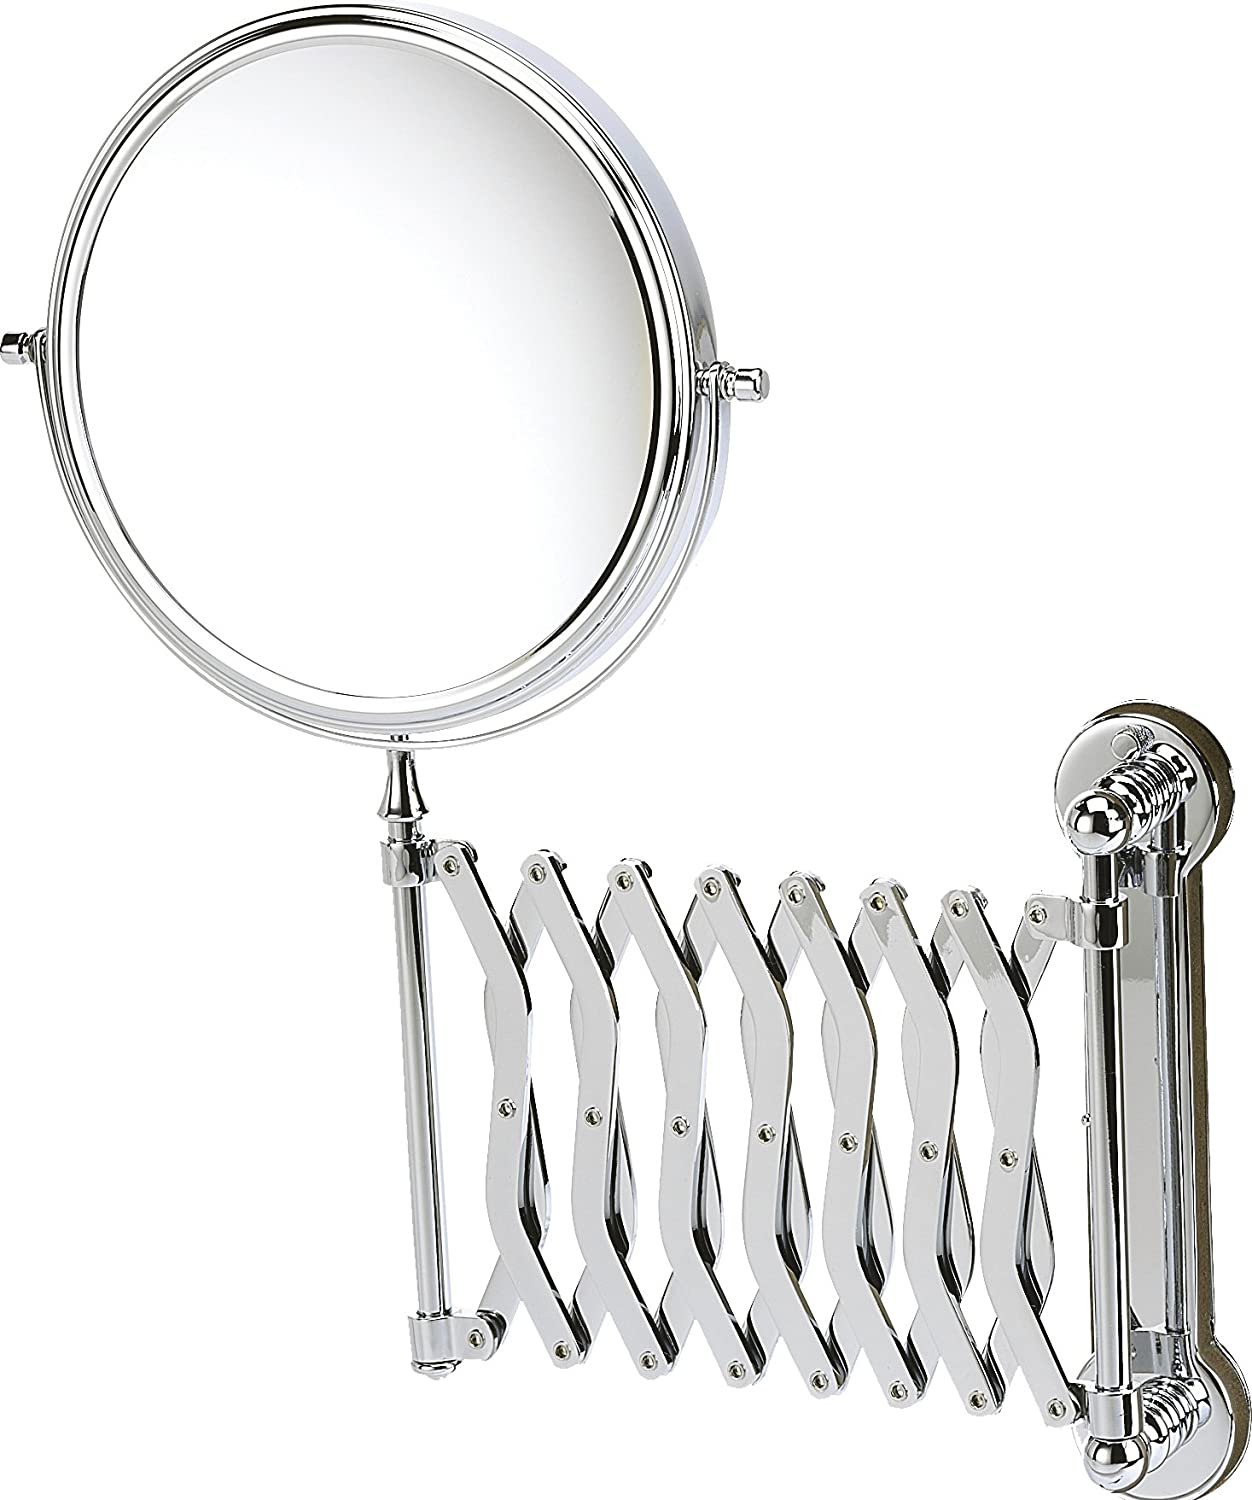 Danielle Wall Mounted Chrome Extending Mirror Amazoncouk Beauty